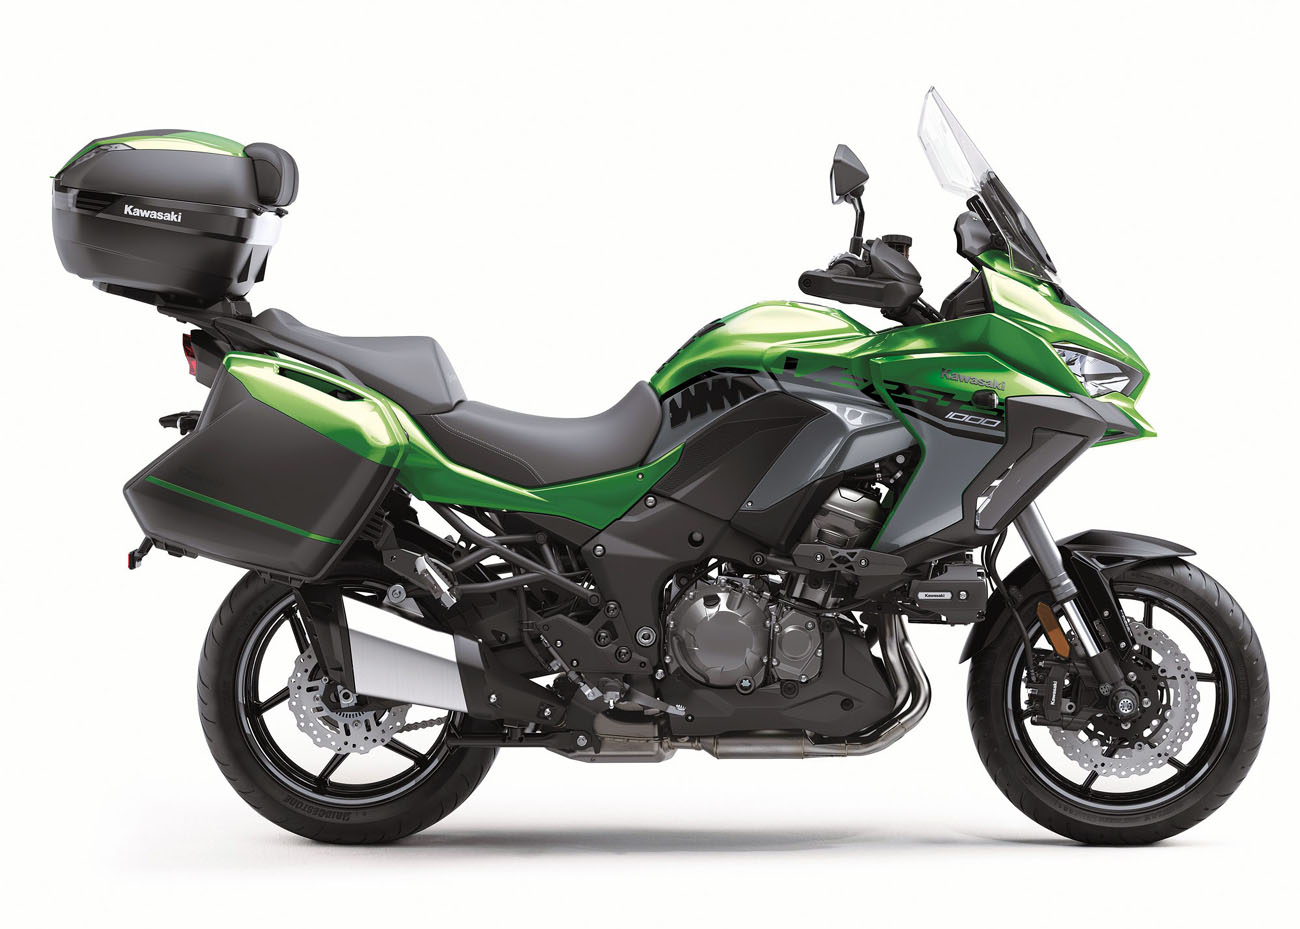 Kawasaki Versys 1000SE-LT+ technical specifications